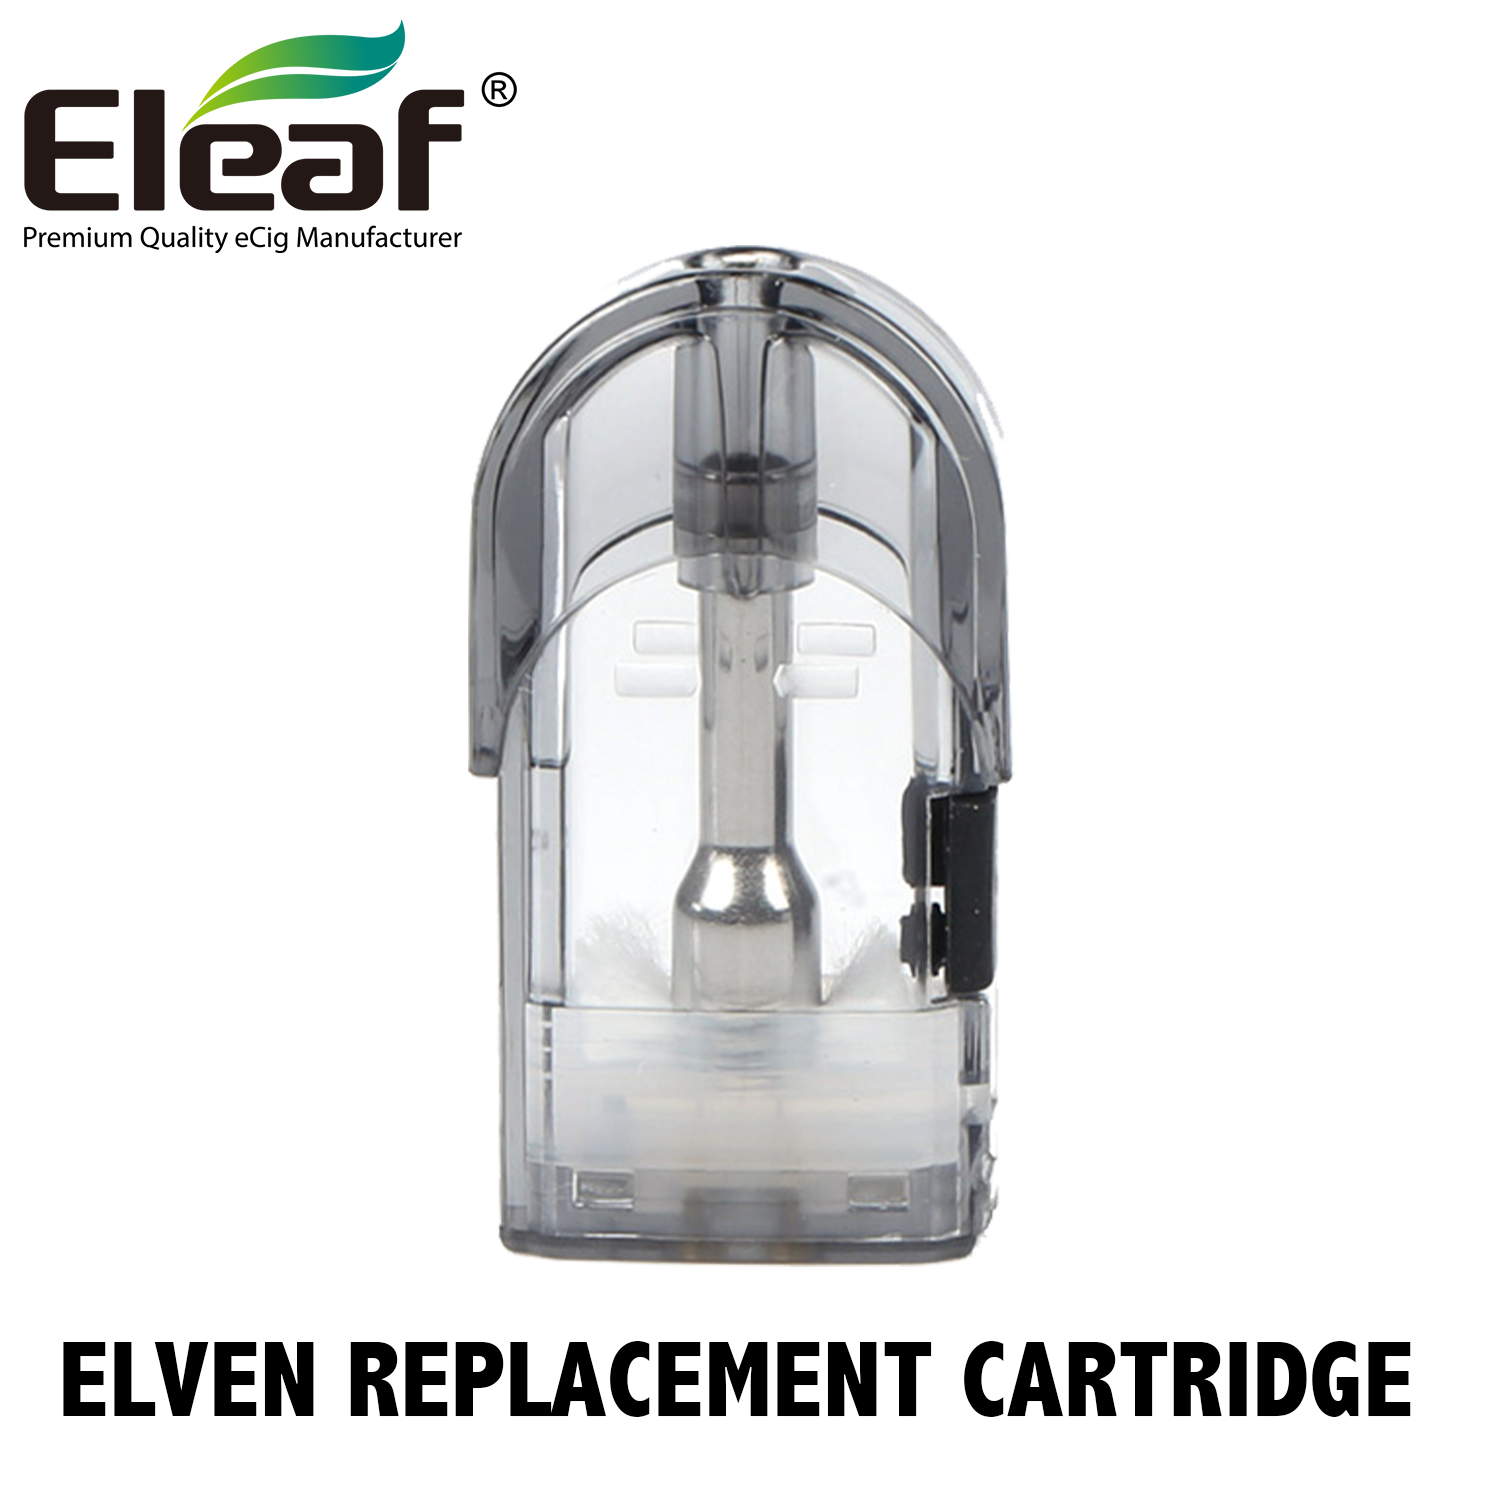 ELEAF ELVEN REPLACEMENT CARTRIDGE (Price Per POD)